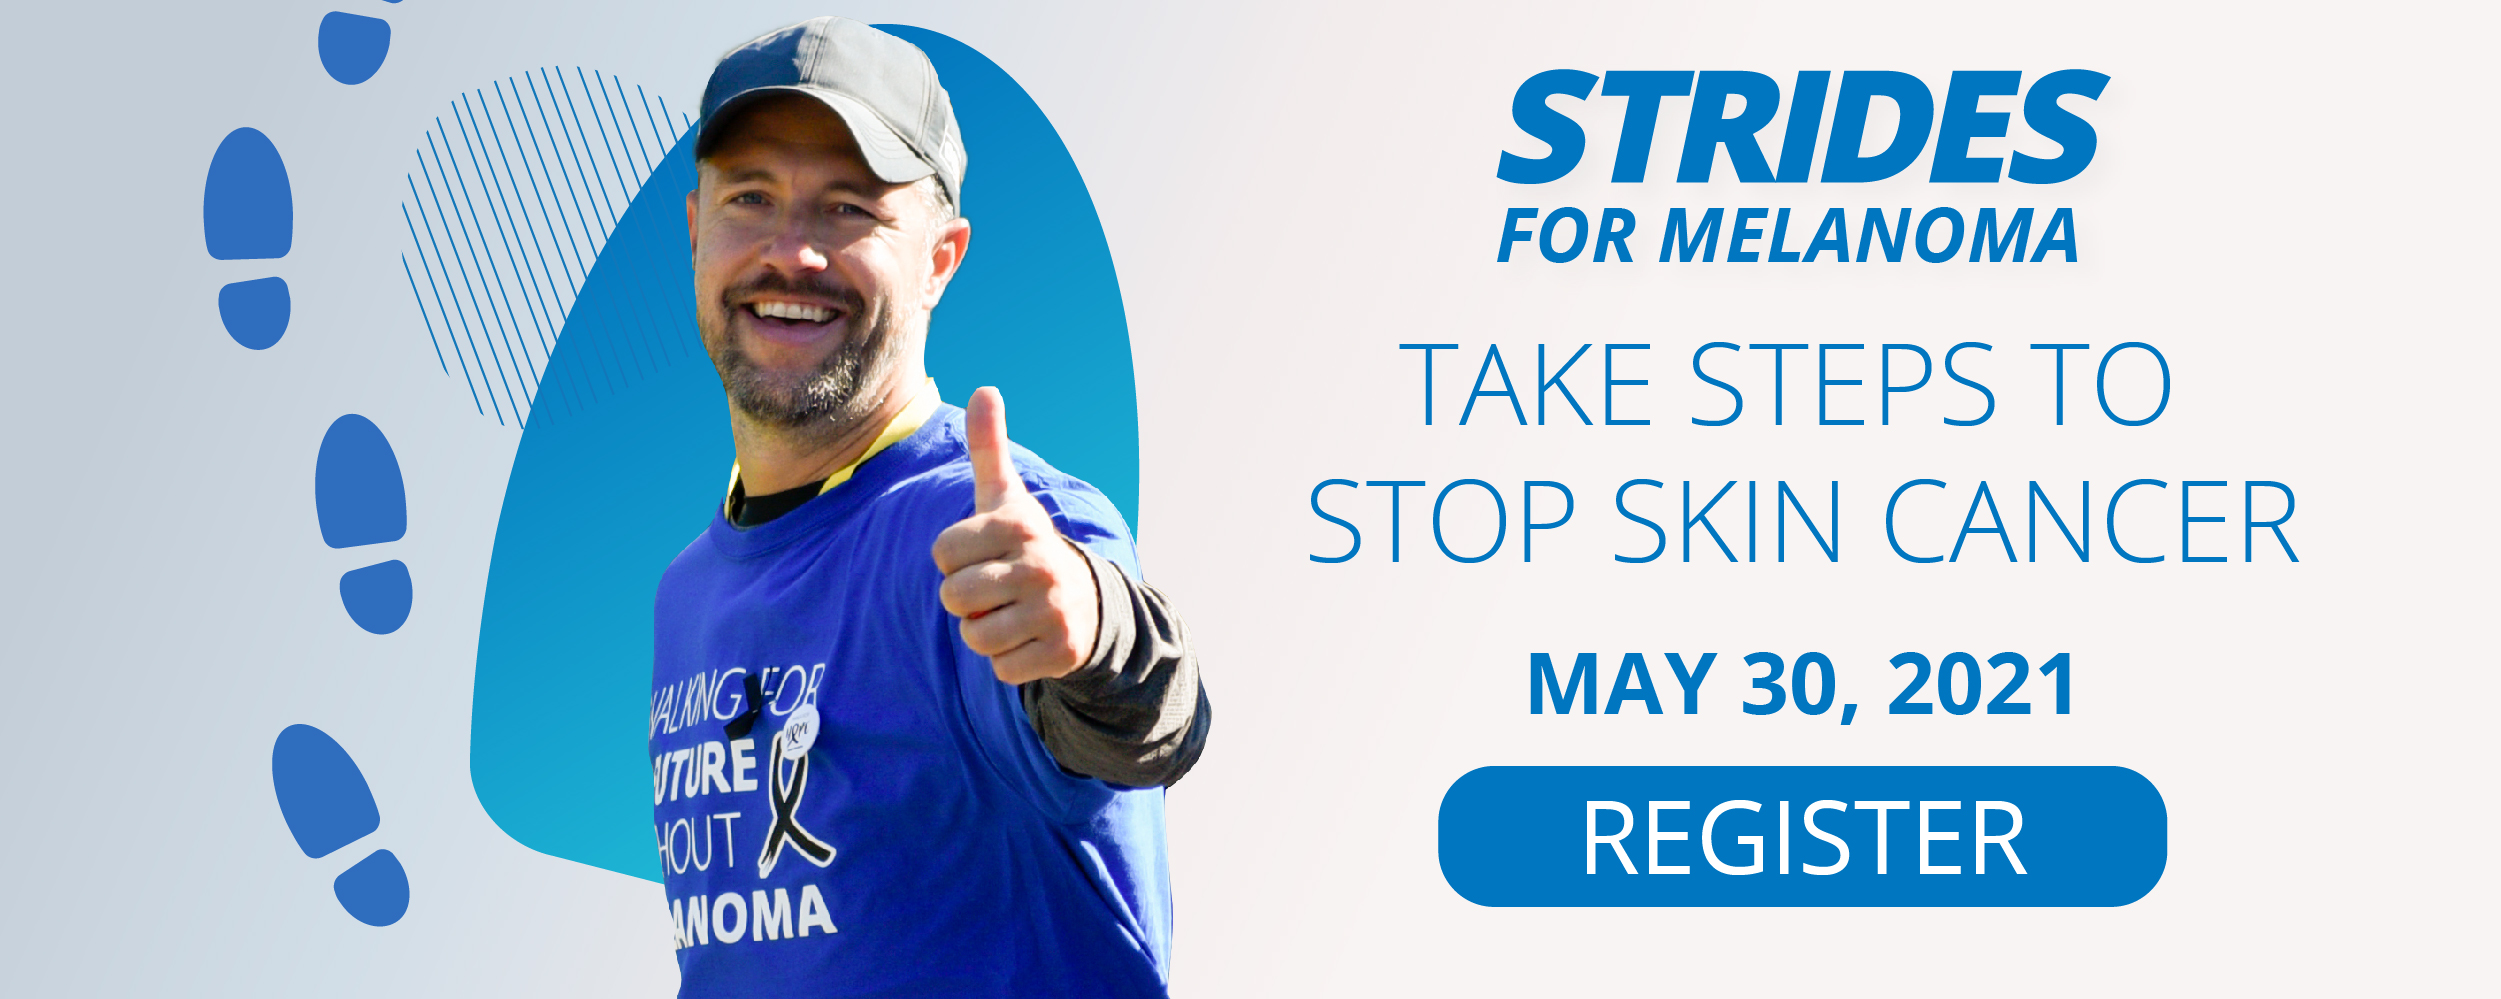 Strides for Melanoma 2021